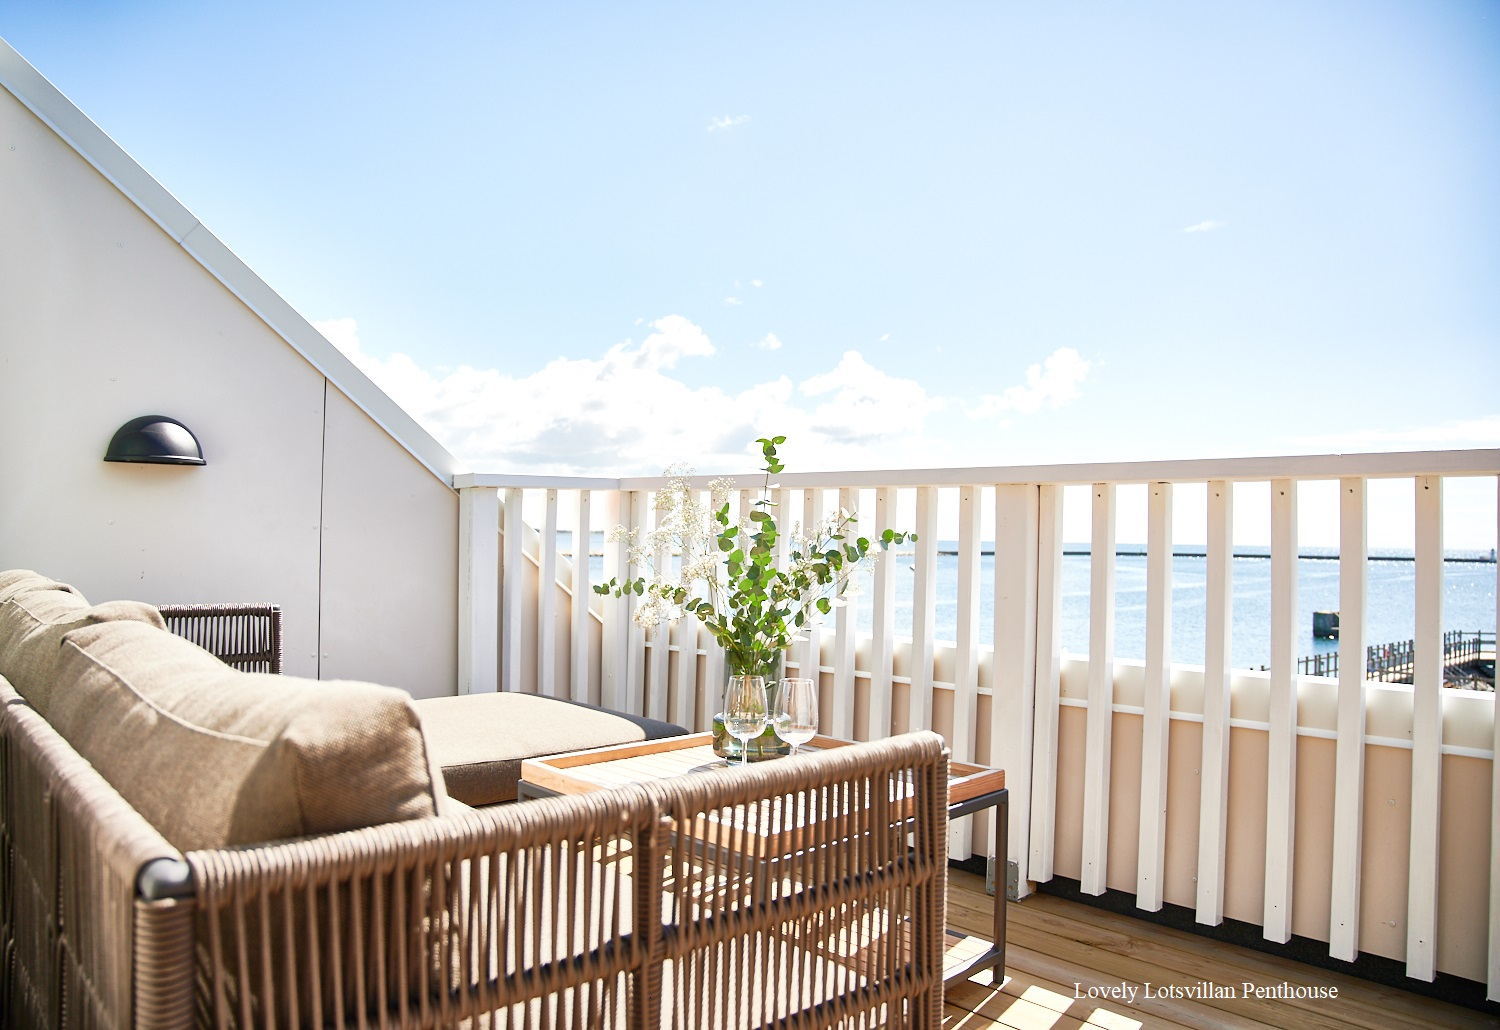 Lovely Lotsvillan Penthouse Terrace